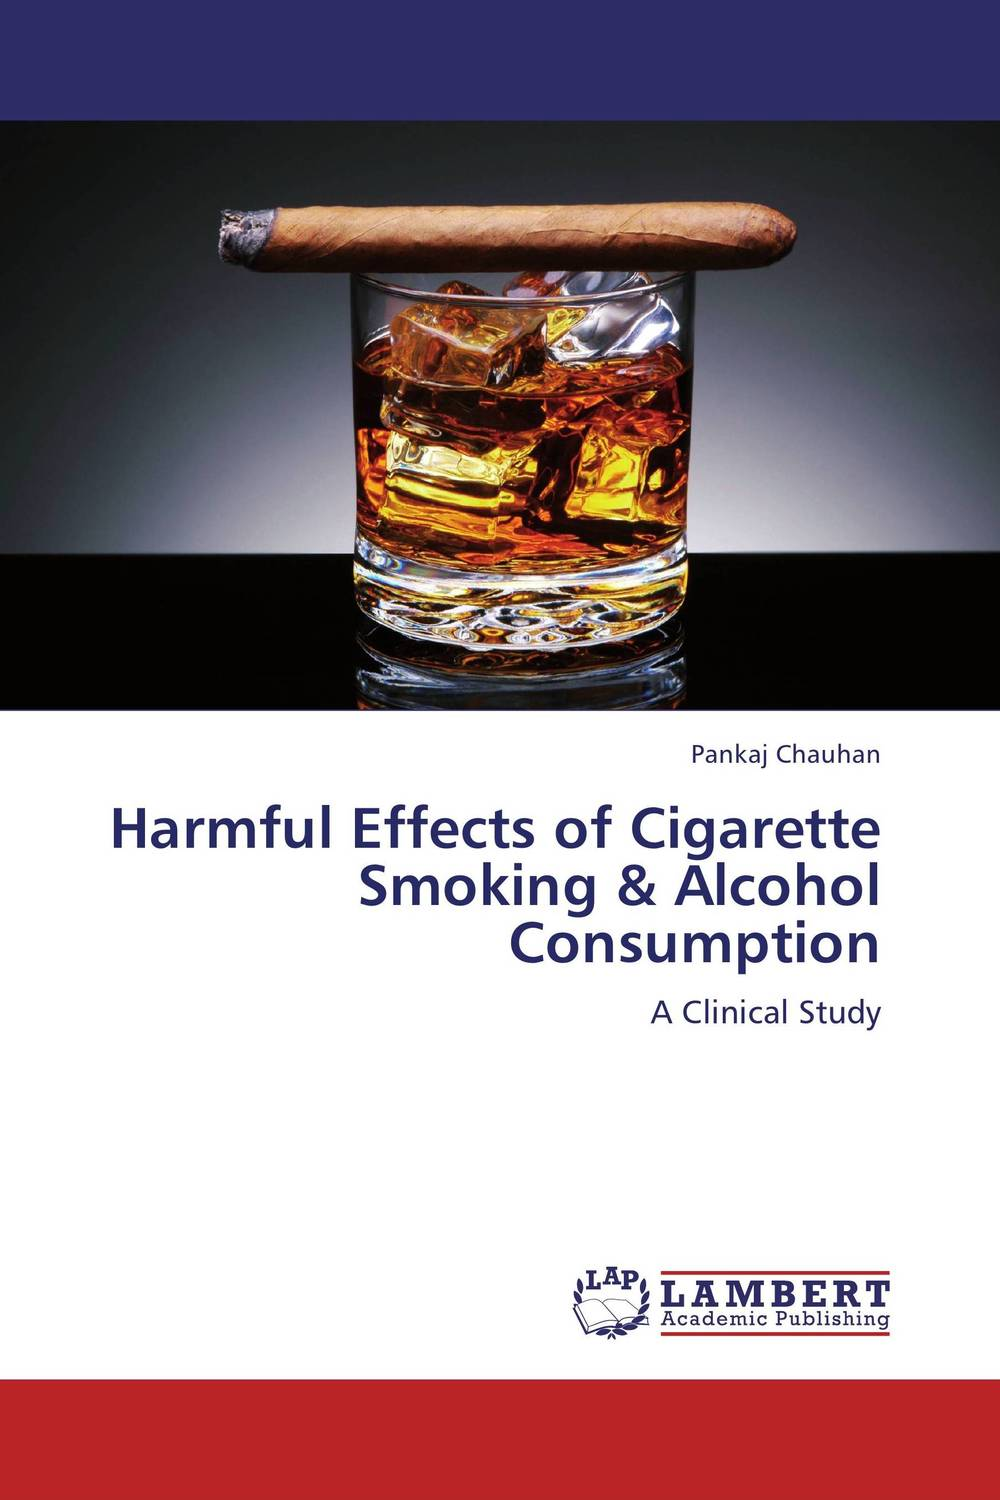 Harmful Effects of Cigarette Smoking & Alcohol Consumption effect of smoking on periodontium